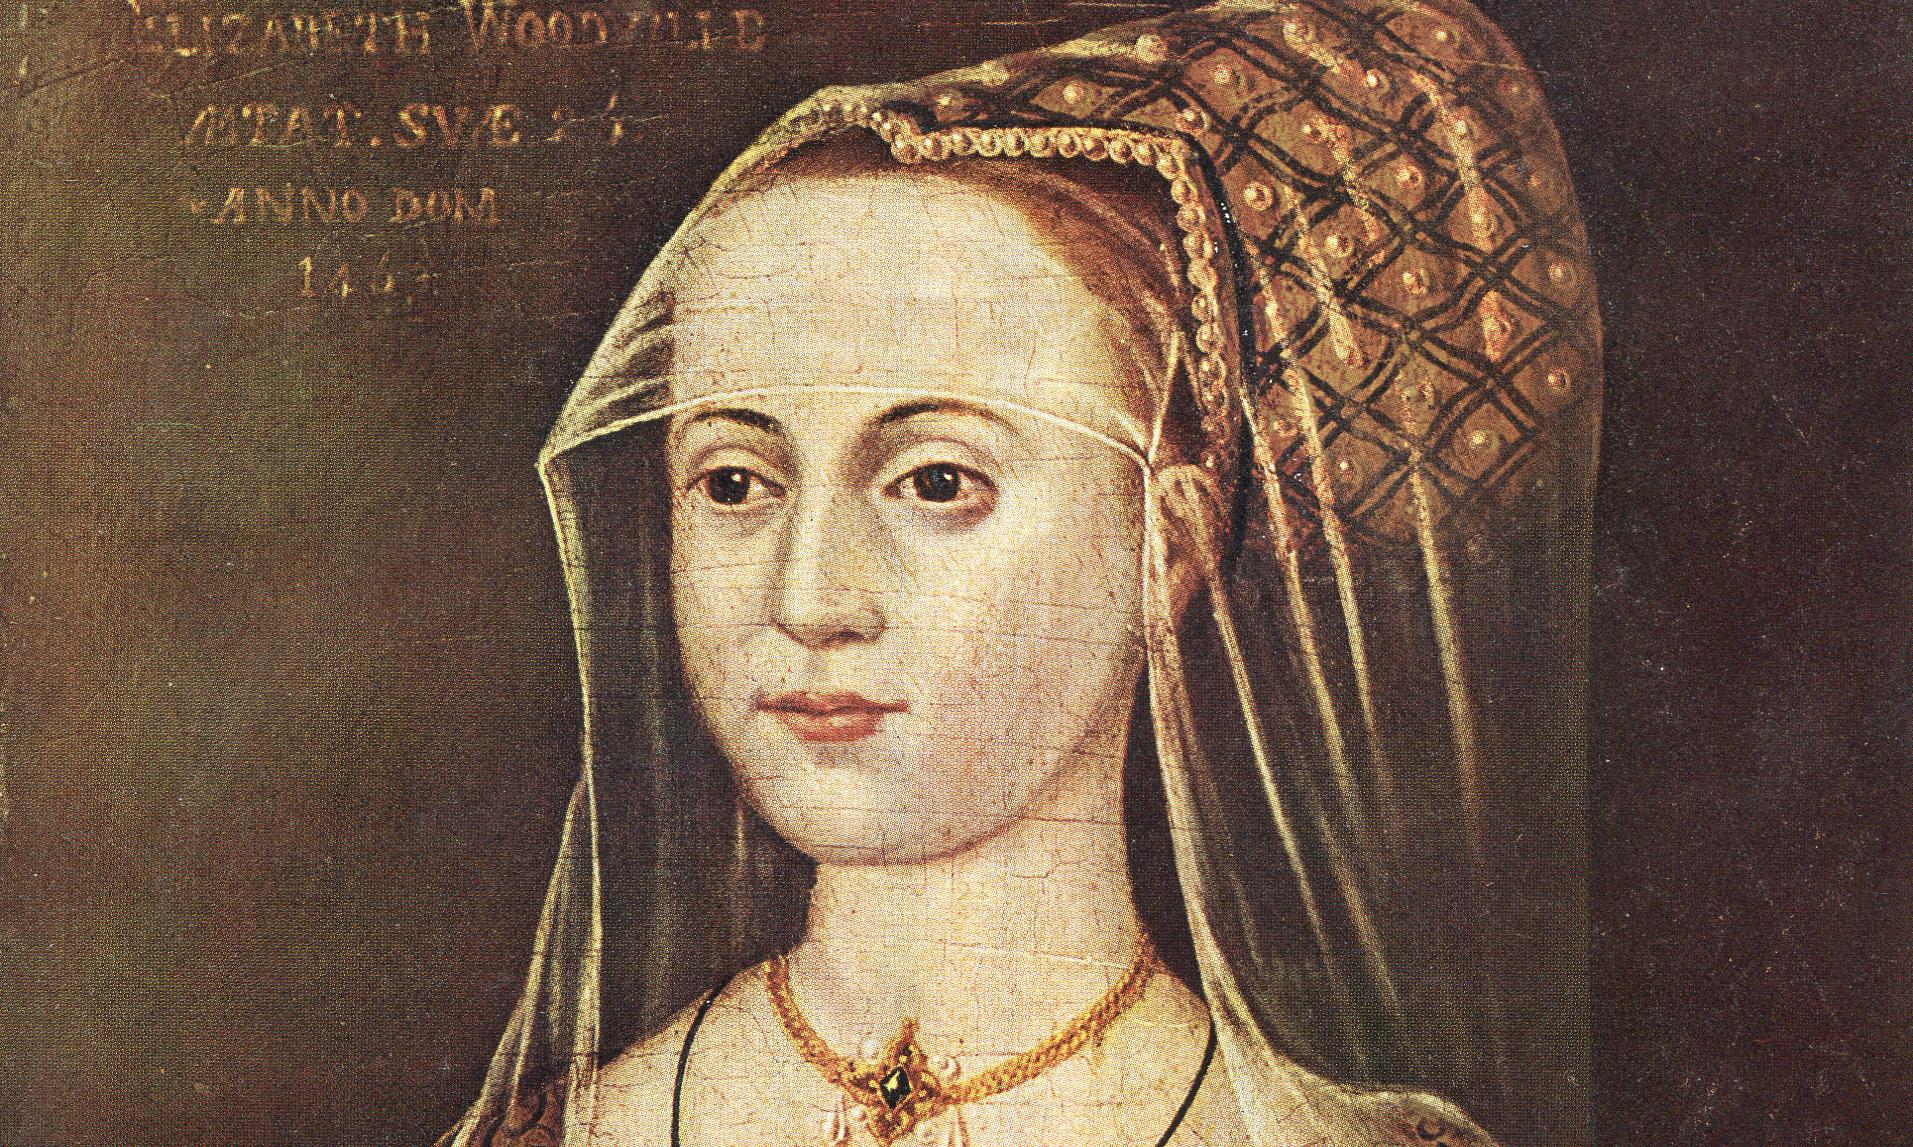 'White Queen' died of plague, claims letter found in National Archives